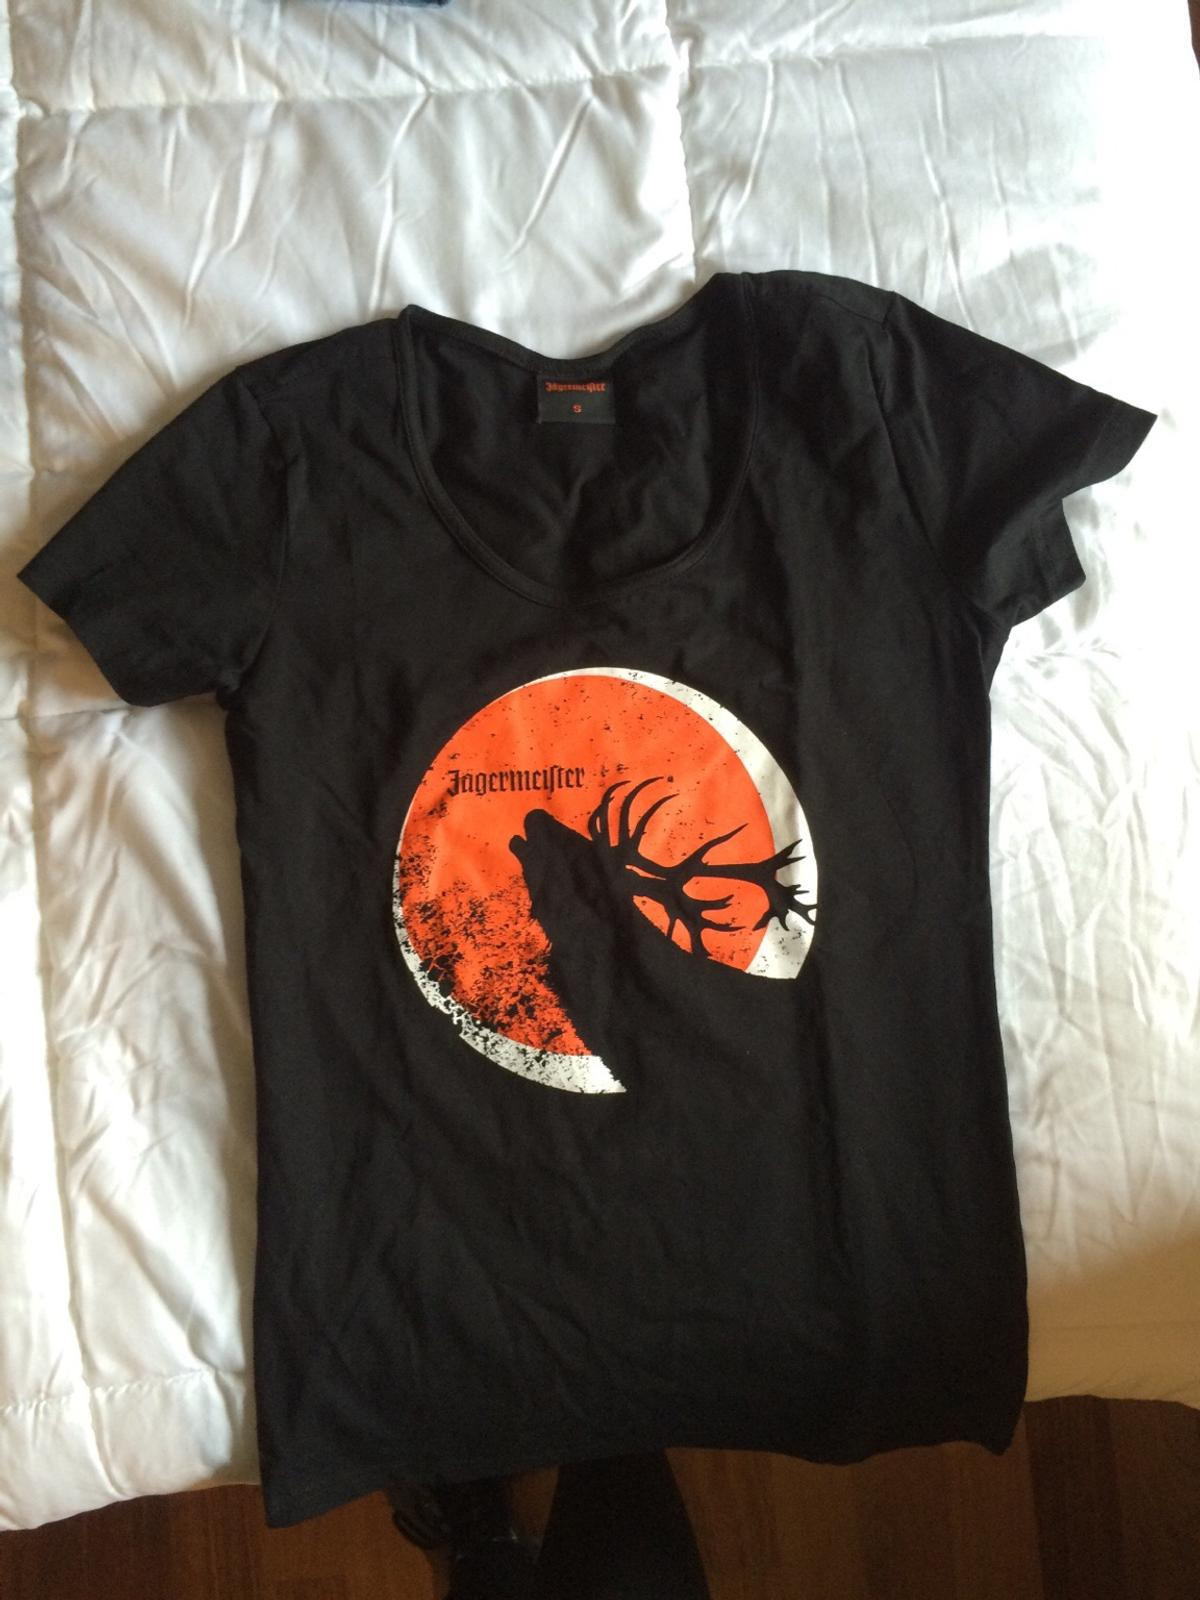 Shirt Sale Shpock T For 00 20158 €2 Jagermeister In Milano nmN80w